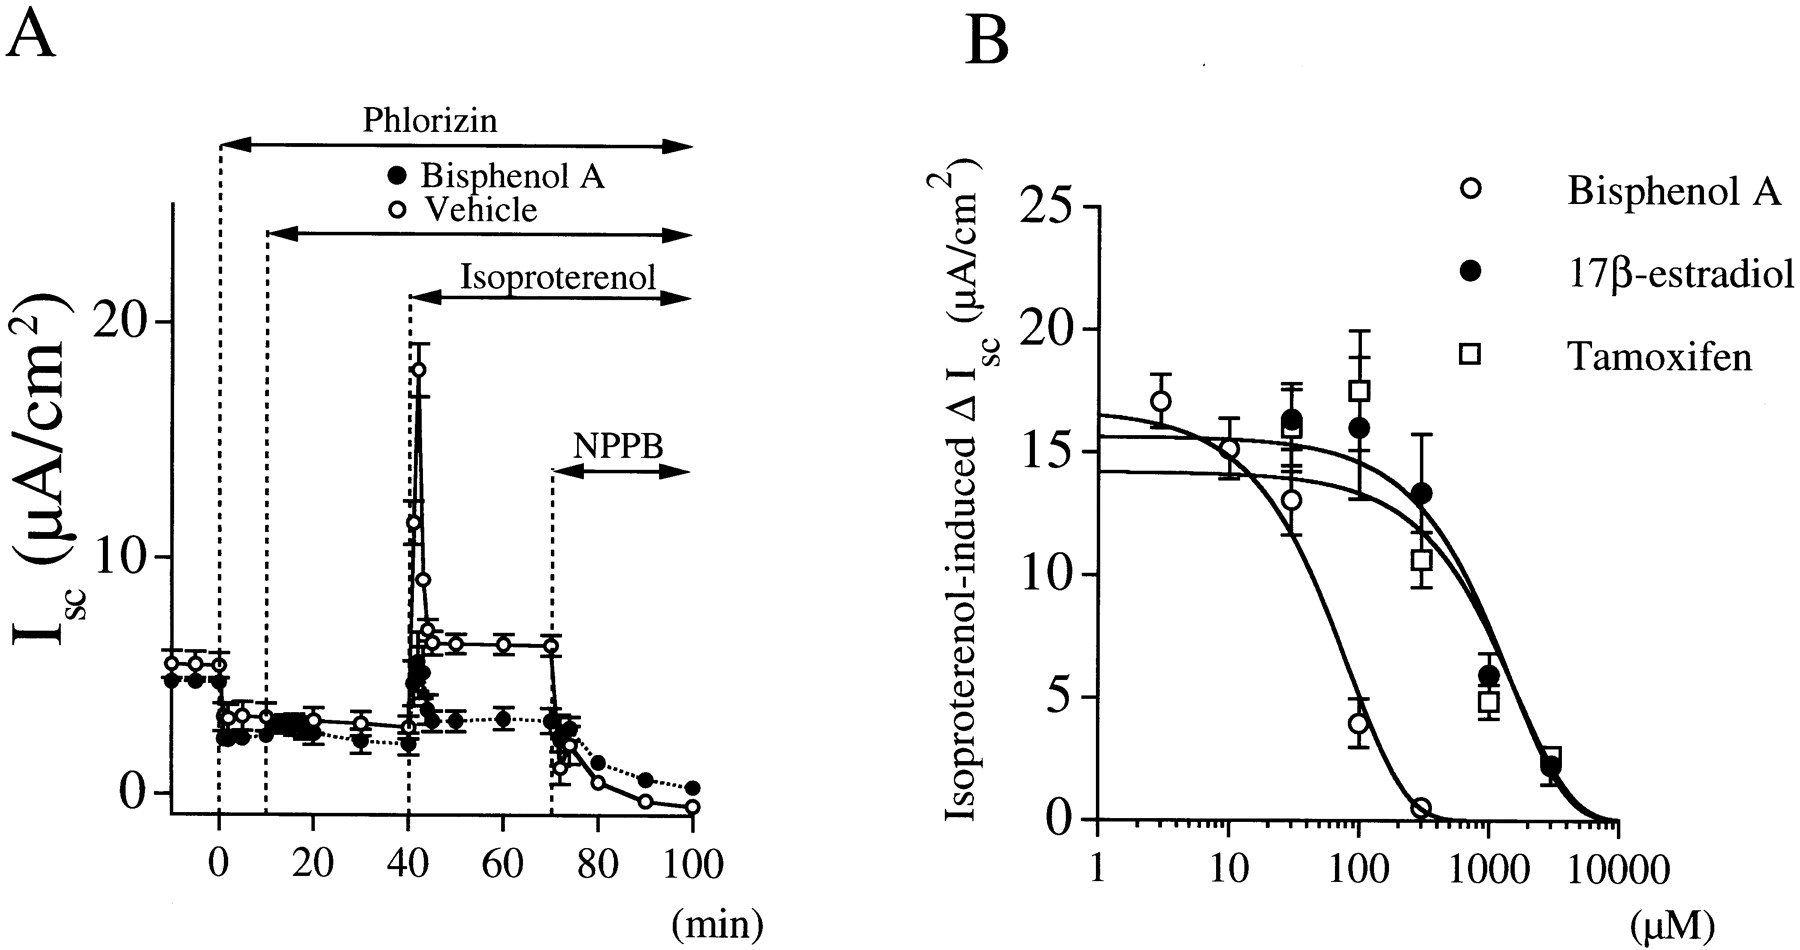 effects of bisphenol a By dr mercola bisphenol-a (bpa) was first created in 1891 by a russian chemist by the 1930s, it was found to mimic the effects of estrogen in the human body.